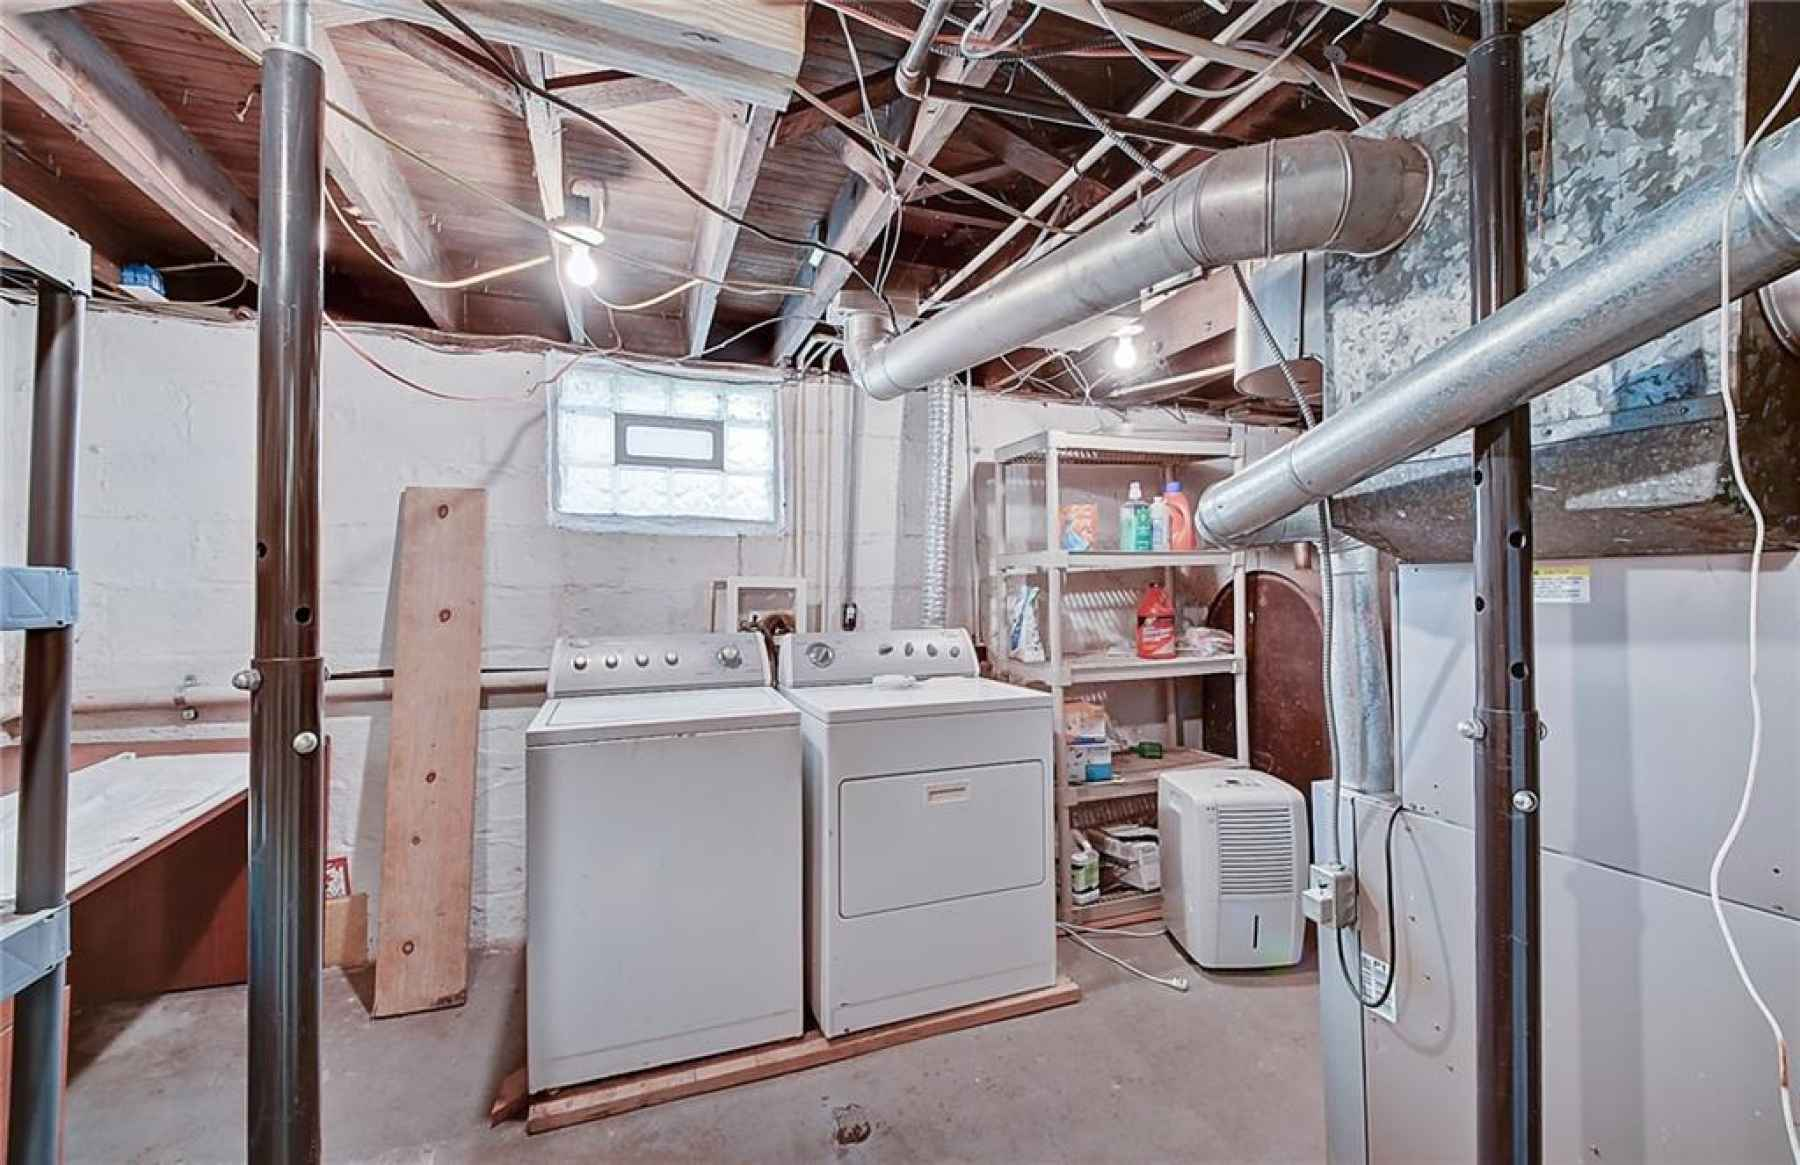 Laundry and storage area in basement.